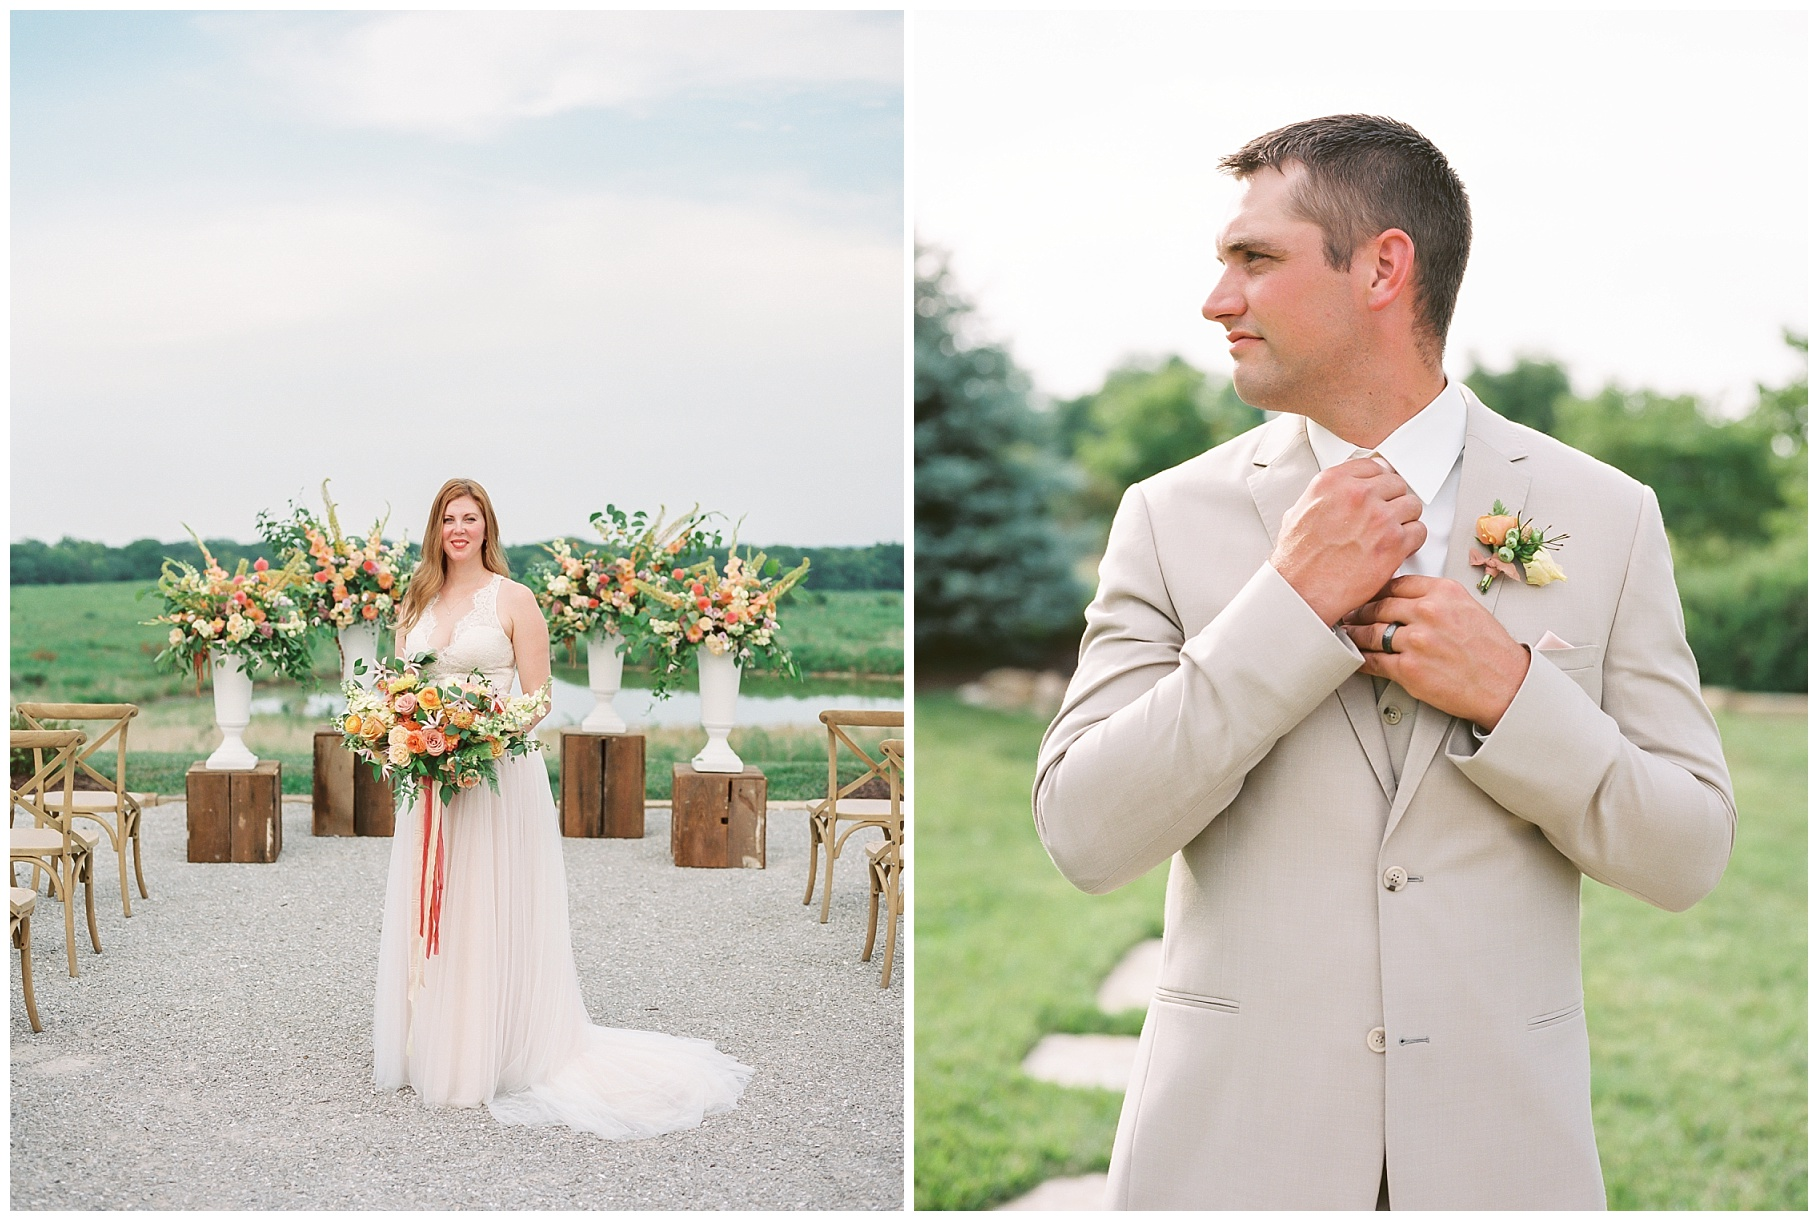 Late Summer Wedding With Pastel Toned Soiree at Blue Bell Farm by Kelsi Kliethermes Photography Best Columbia Missouri Wedding Photographer_0089.jpg